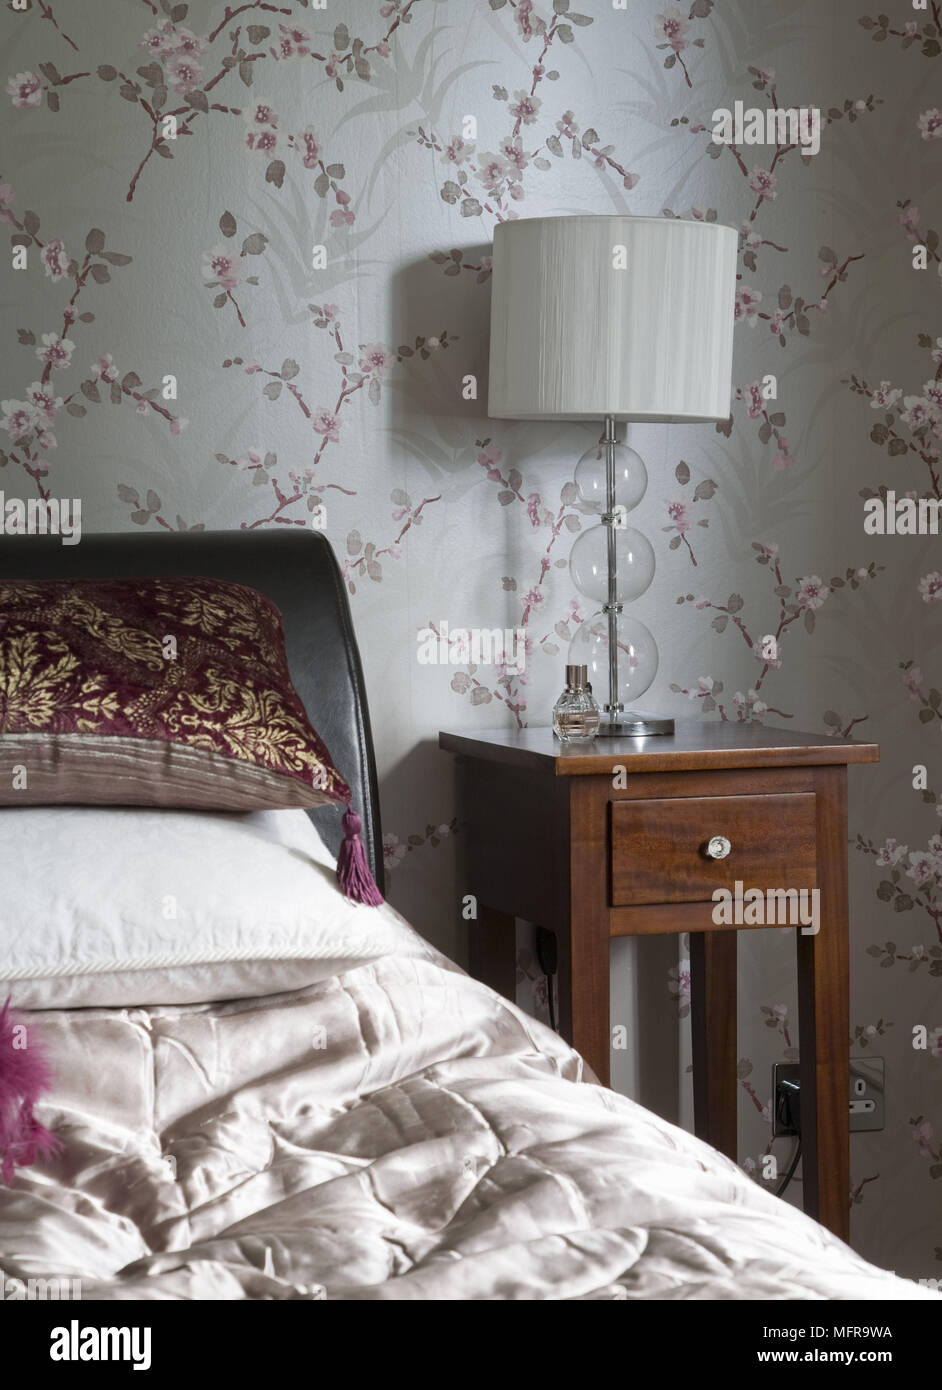 Lamp On Wooden Bedside Table Next To Bed With Leather Headboard In